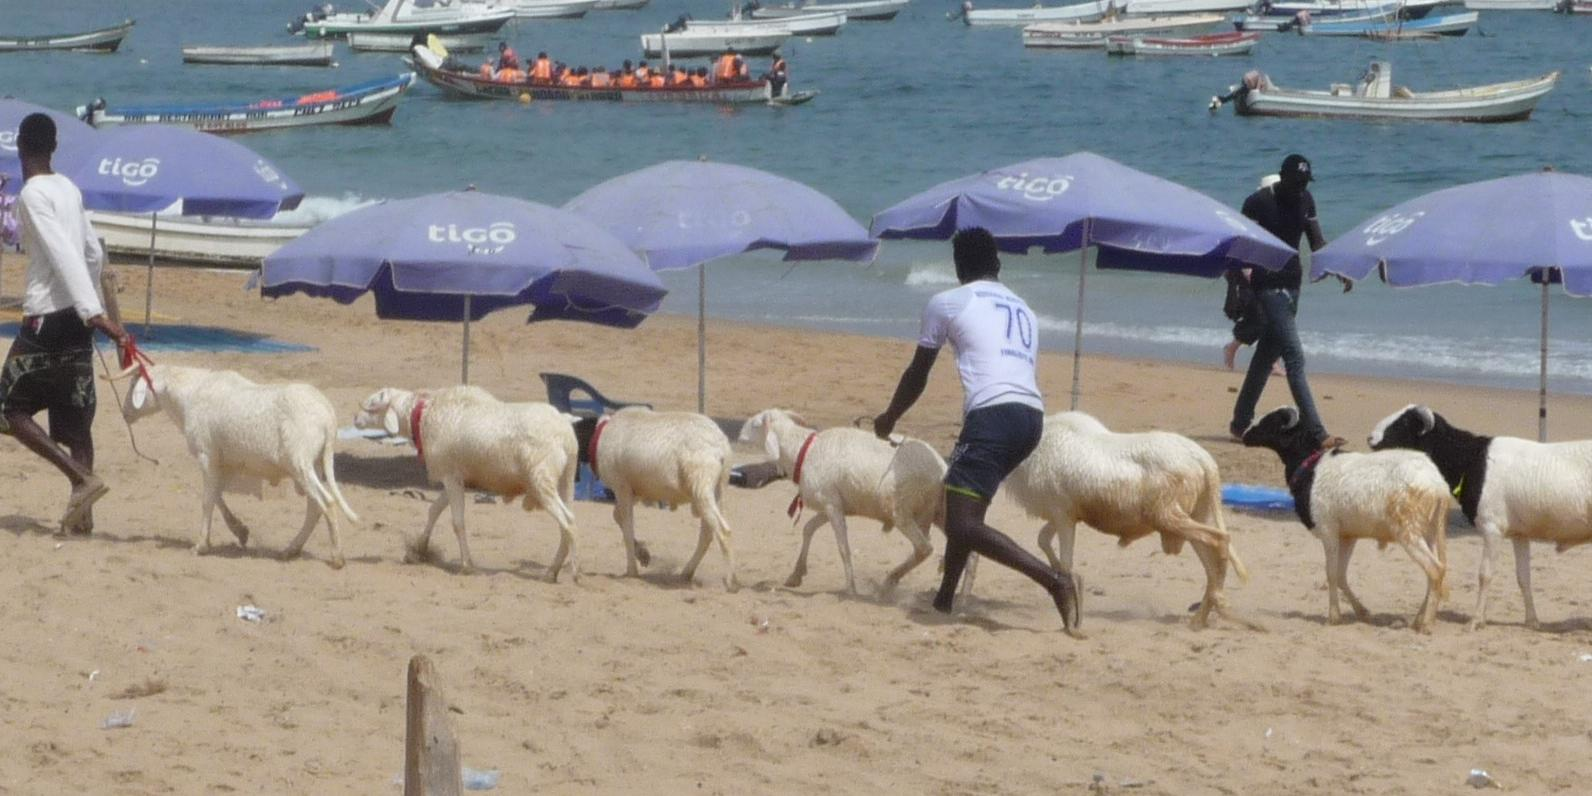 Sheep on the beach